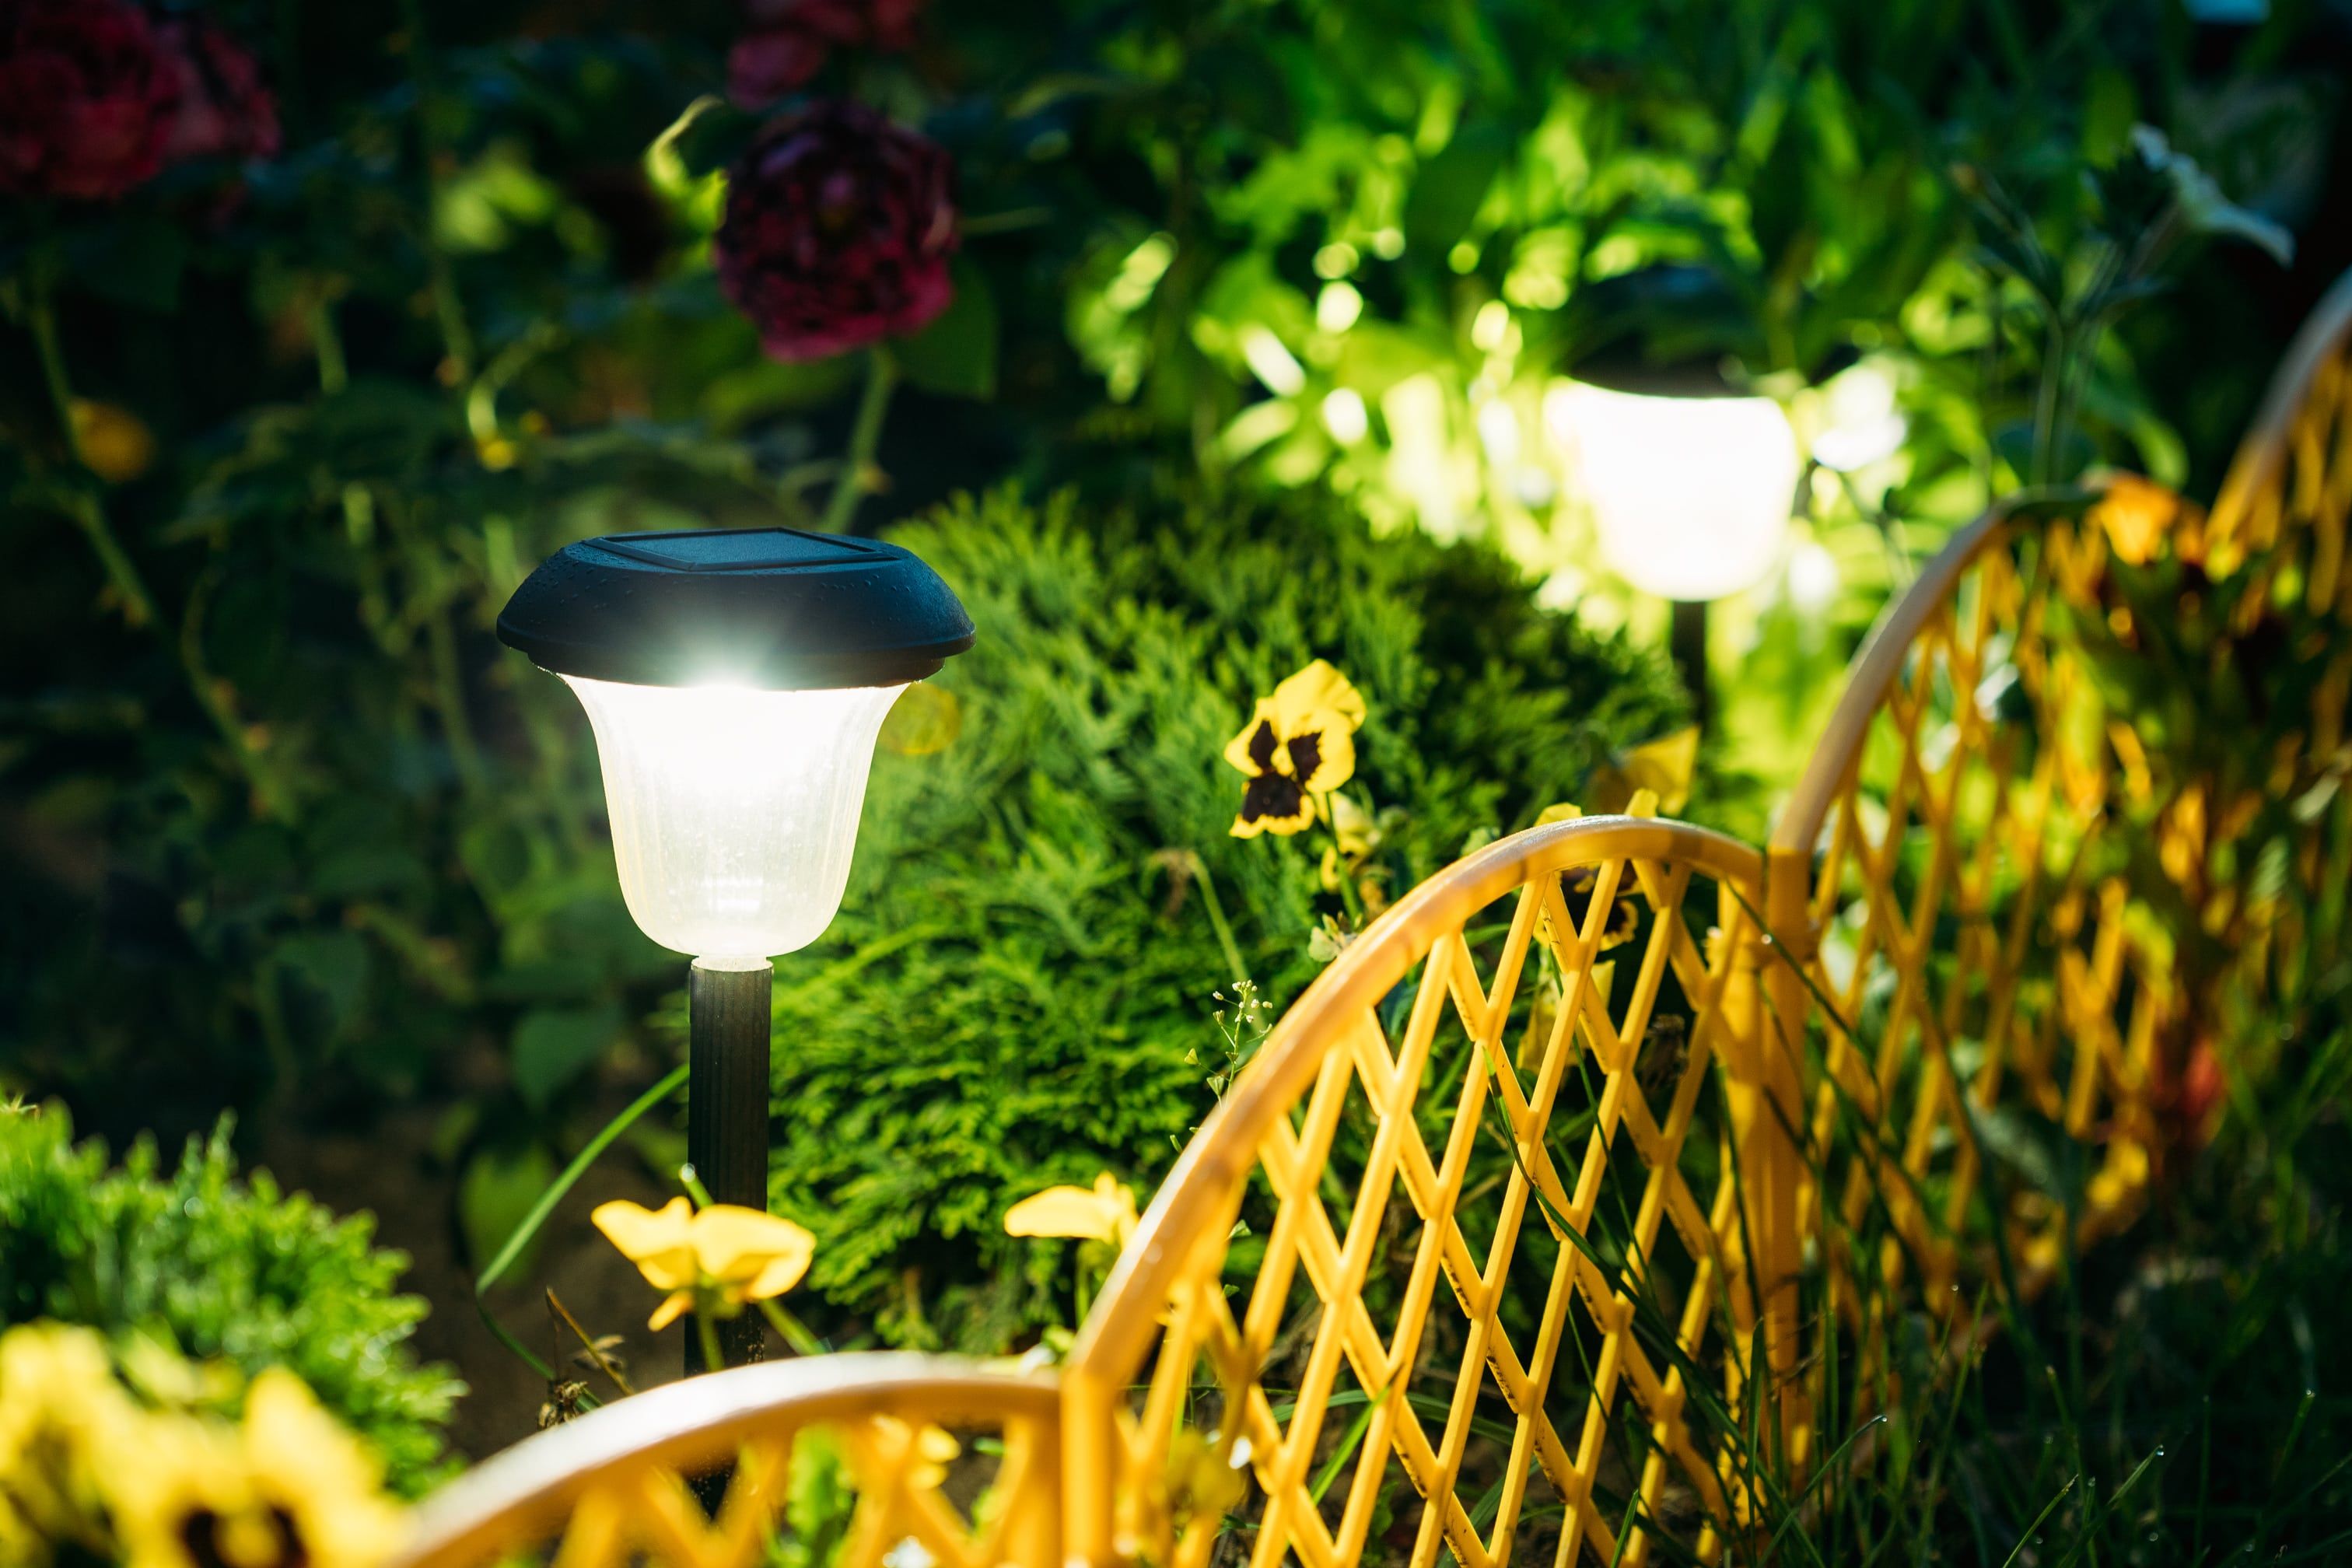 small-solar-garden-light-lantern-in-flower-bed-PDH7YPB-min